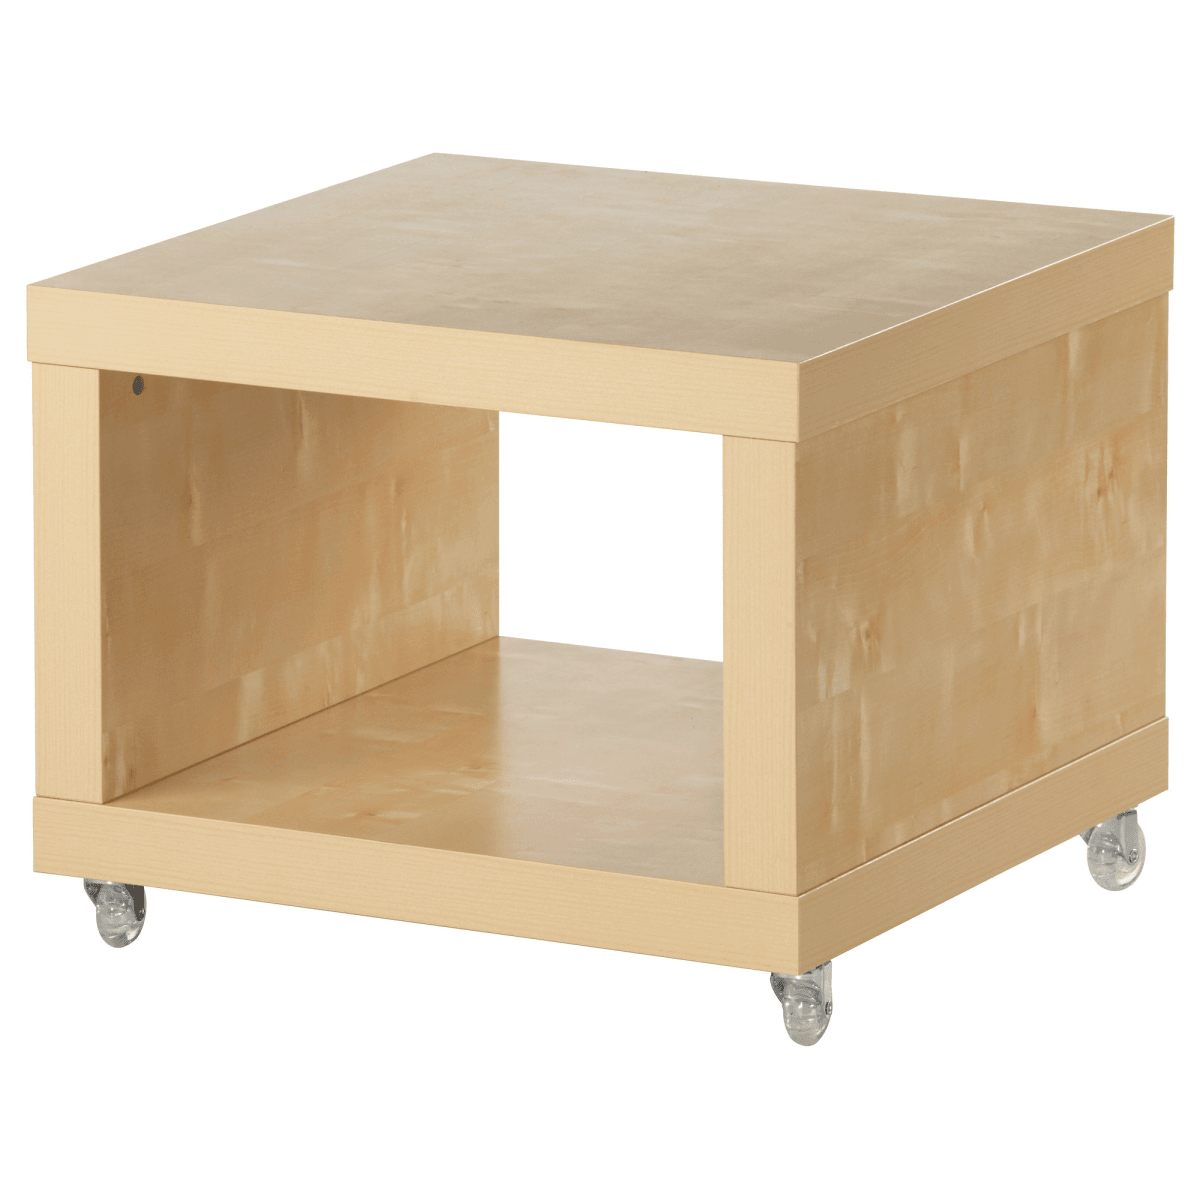 Bedside table from STACKED LACK - IKEA Hackers - IKEA Hackers